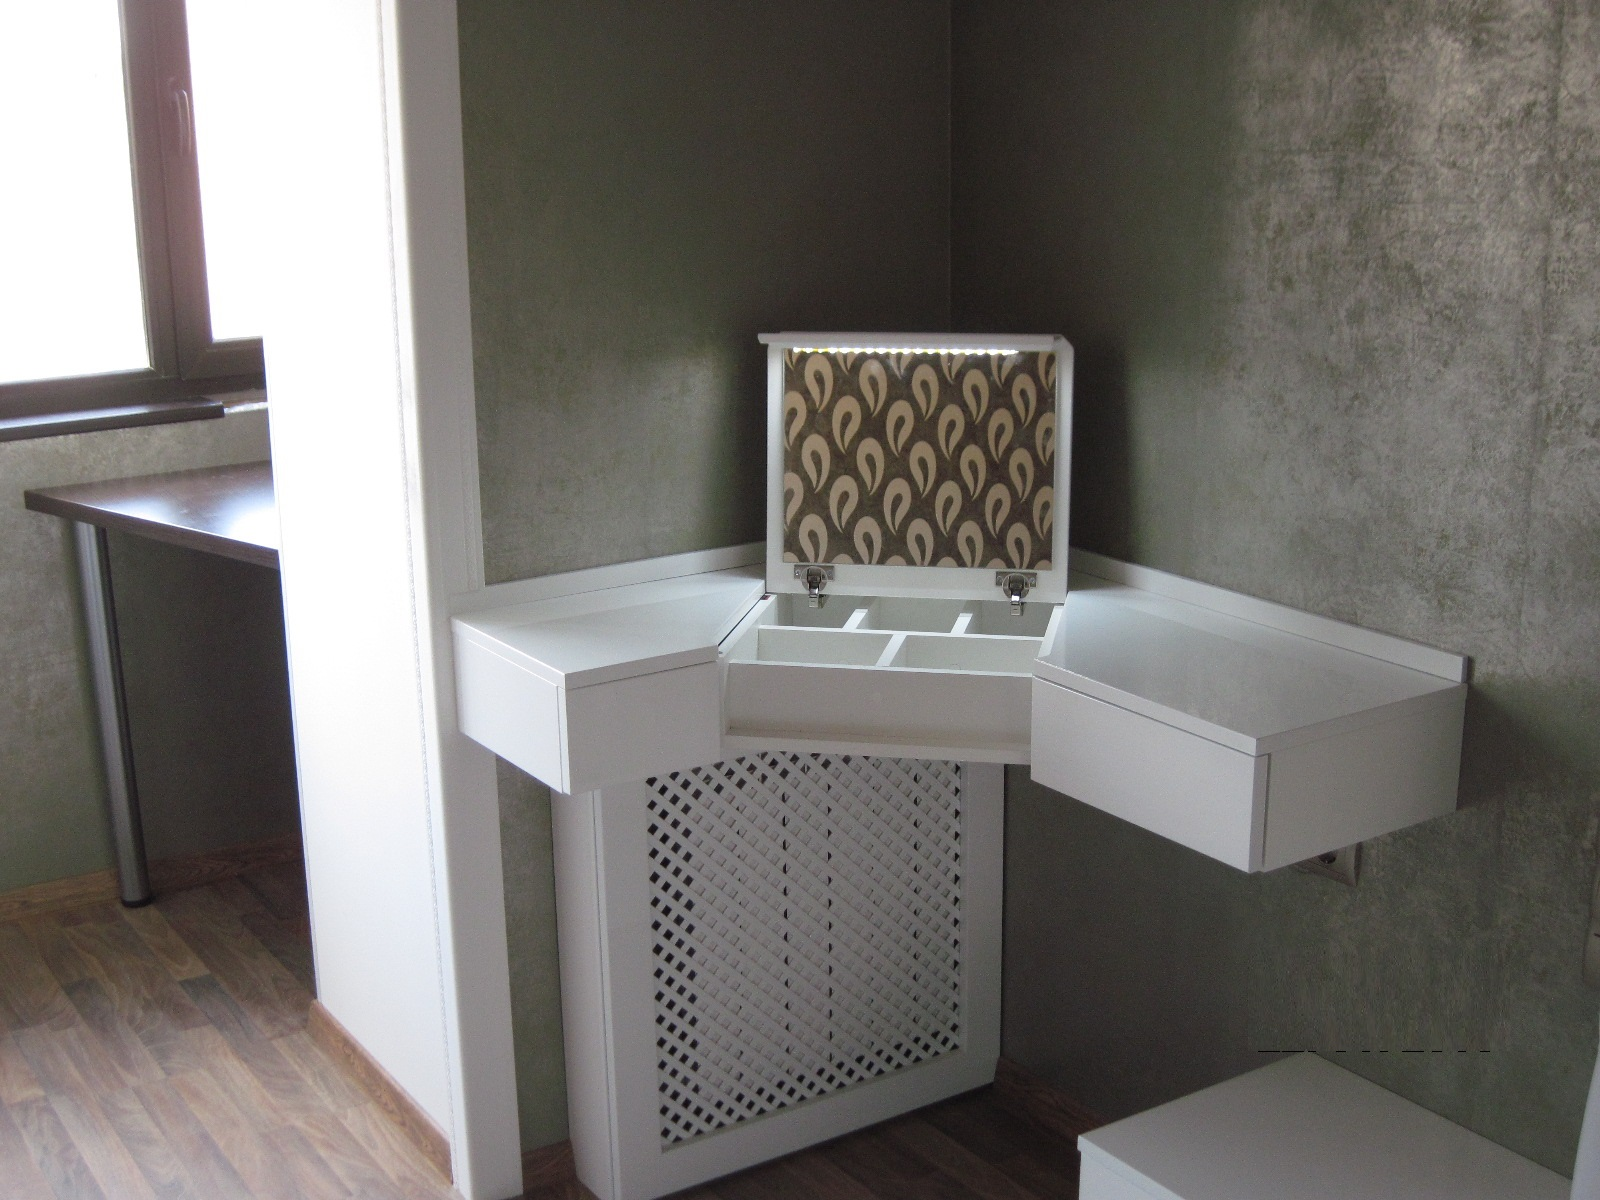 Dressing table designs - White Modern Corner Dressing Table Design Ideas